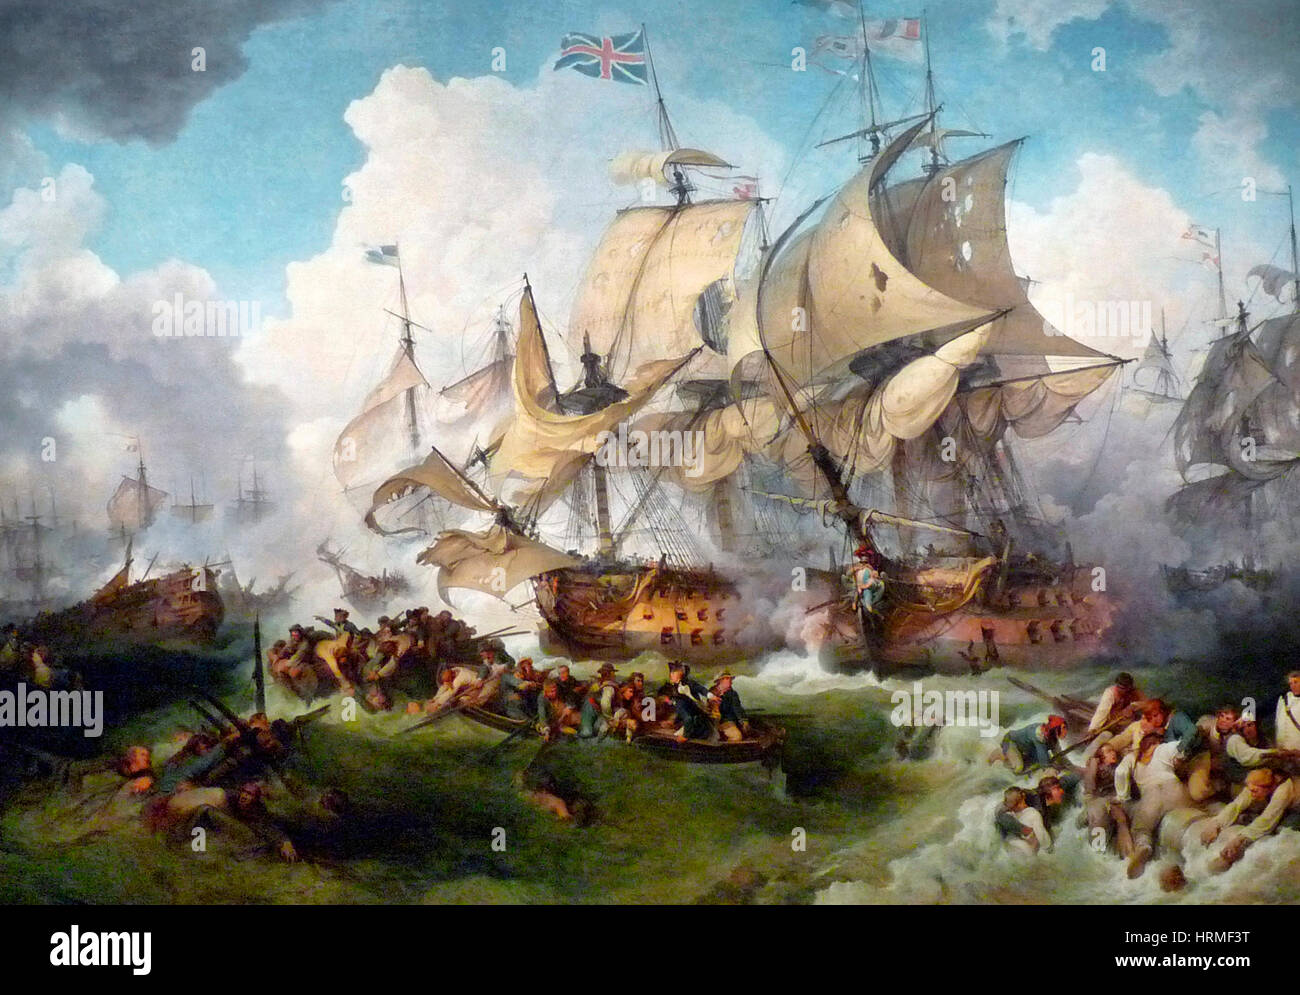 The Glorious First of June, 1794 - The Victory of Lord Howe - Philip James de Loutherbourg - Stock Image